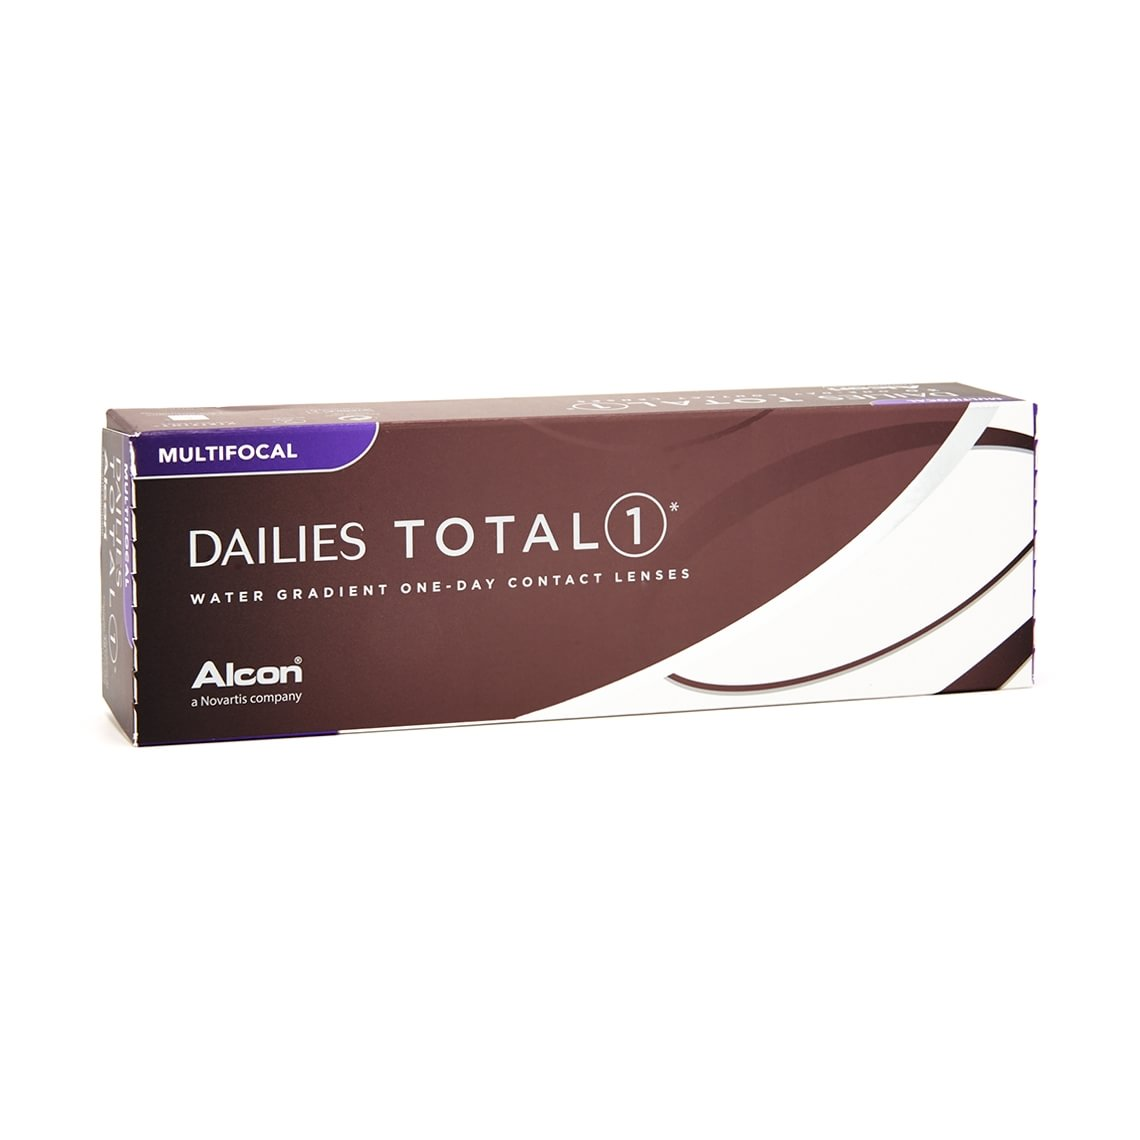 DAILIES Total 1 Multifocal 30 stk/pakke